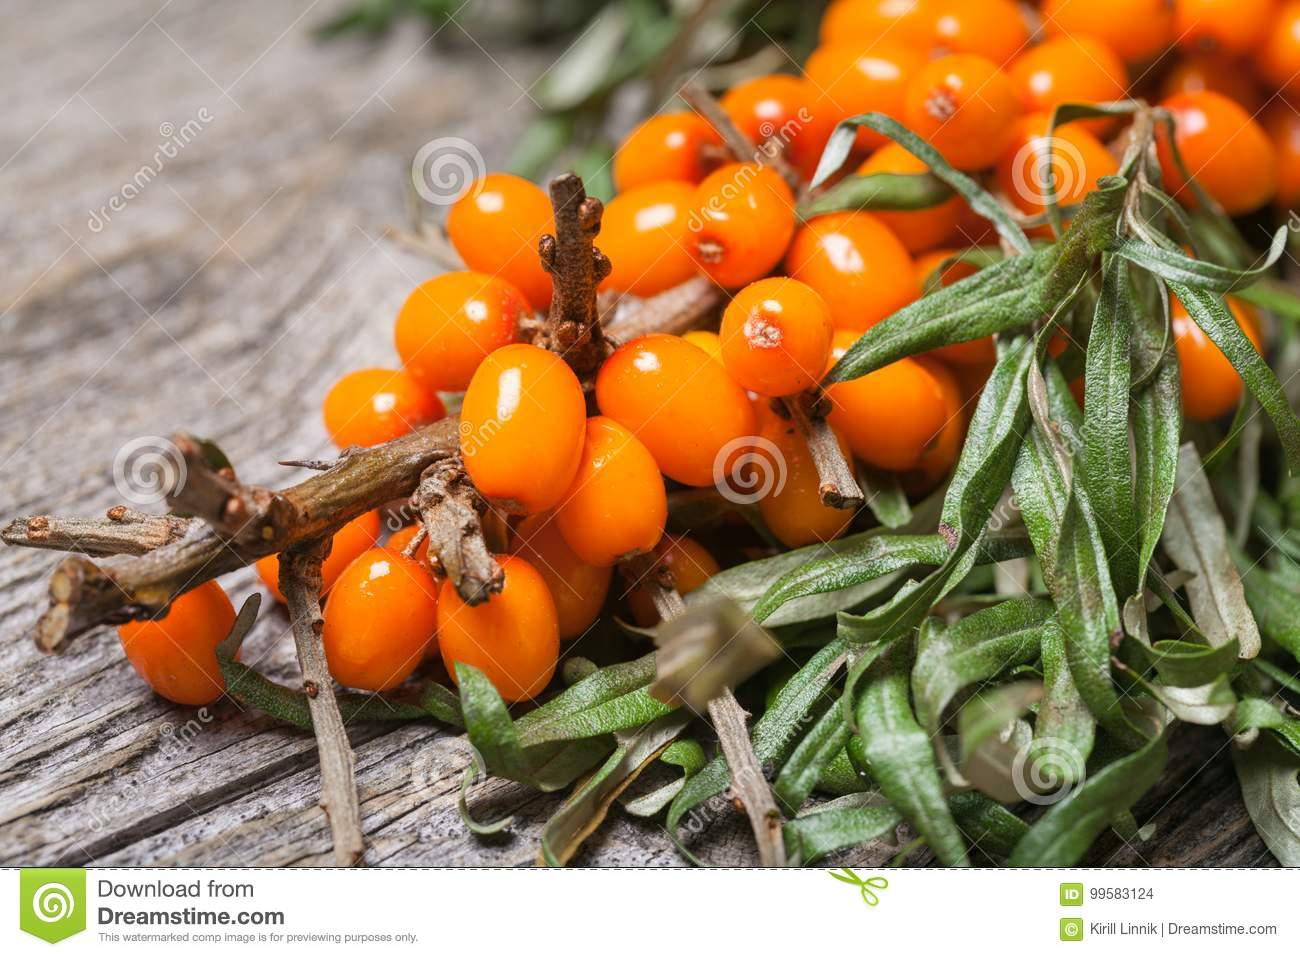 Download Fresh Seabuckthorn On The Table Stock Photo - Image of abundance, harvest: 99583124